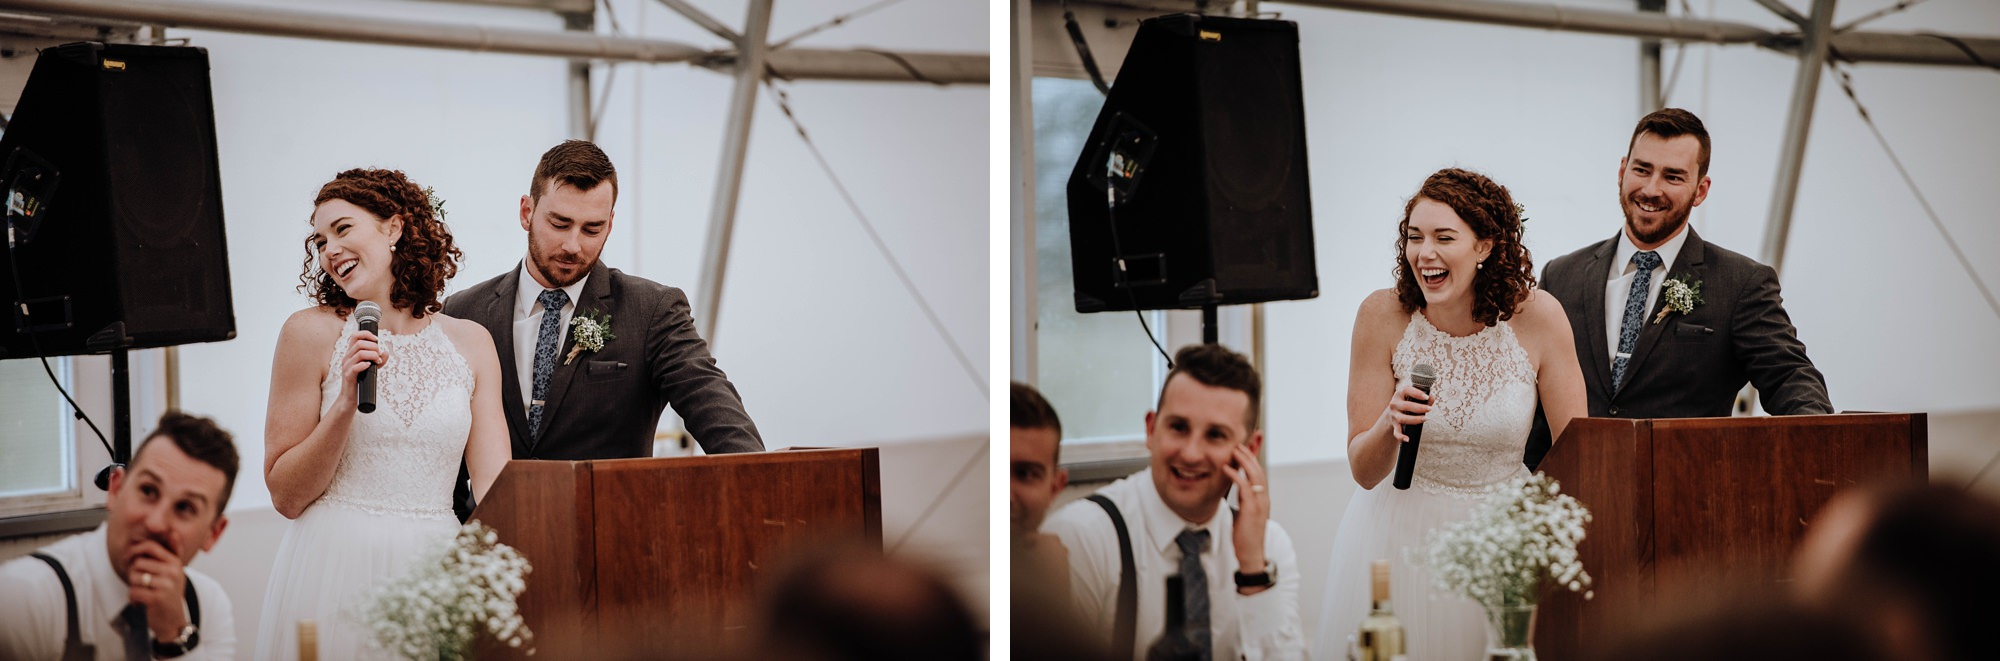 candid shots of guests at fun and romantic Indi wedding in Calgary captured at the Calgary golf and country club